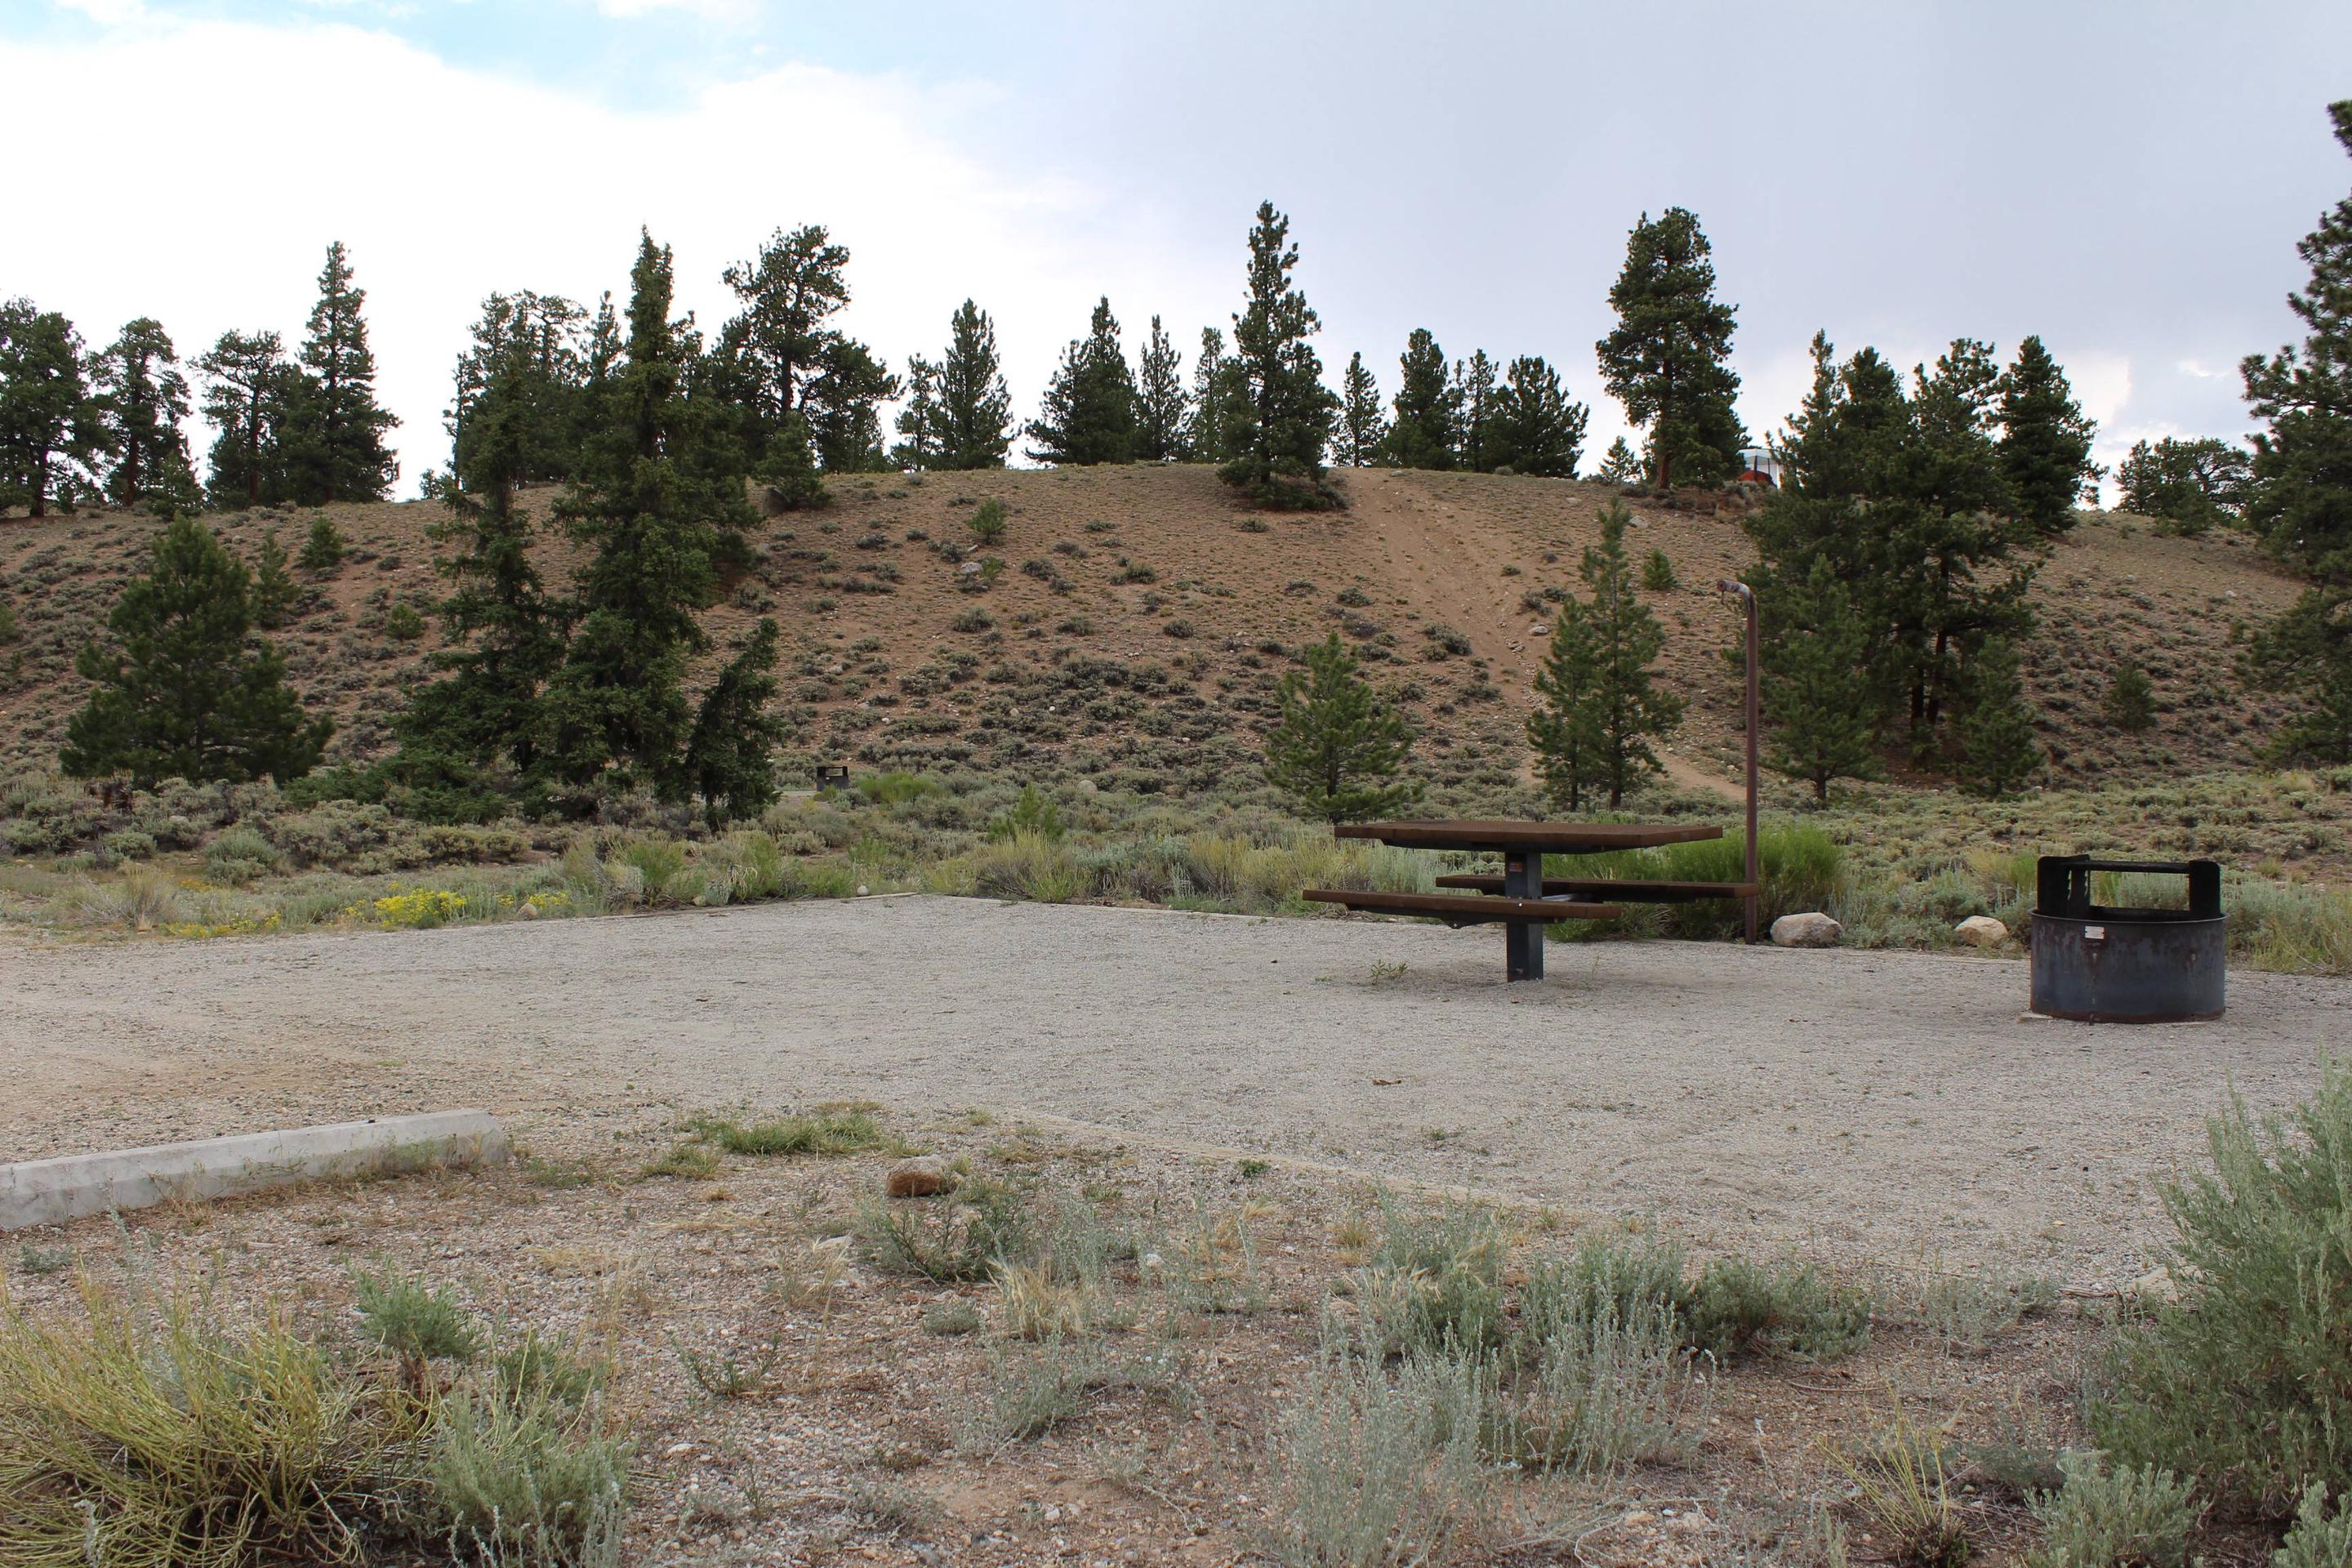 White Star Campground, site 20 picnic table and fire ring